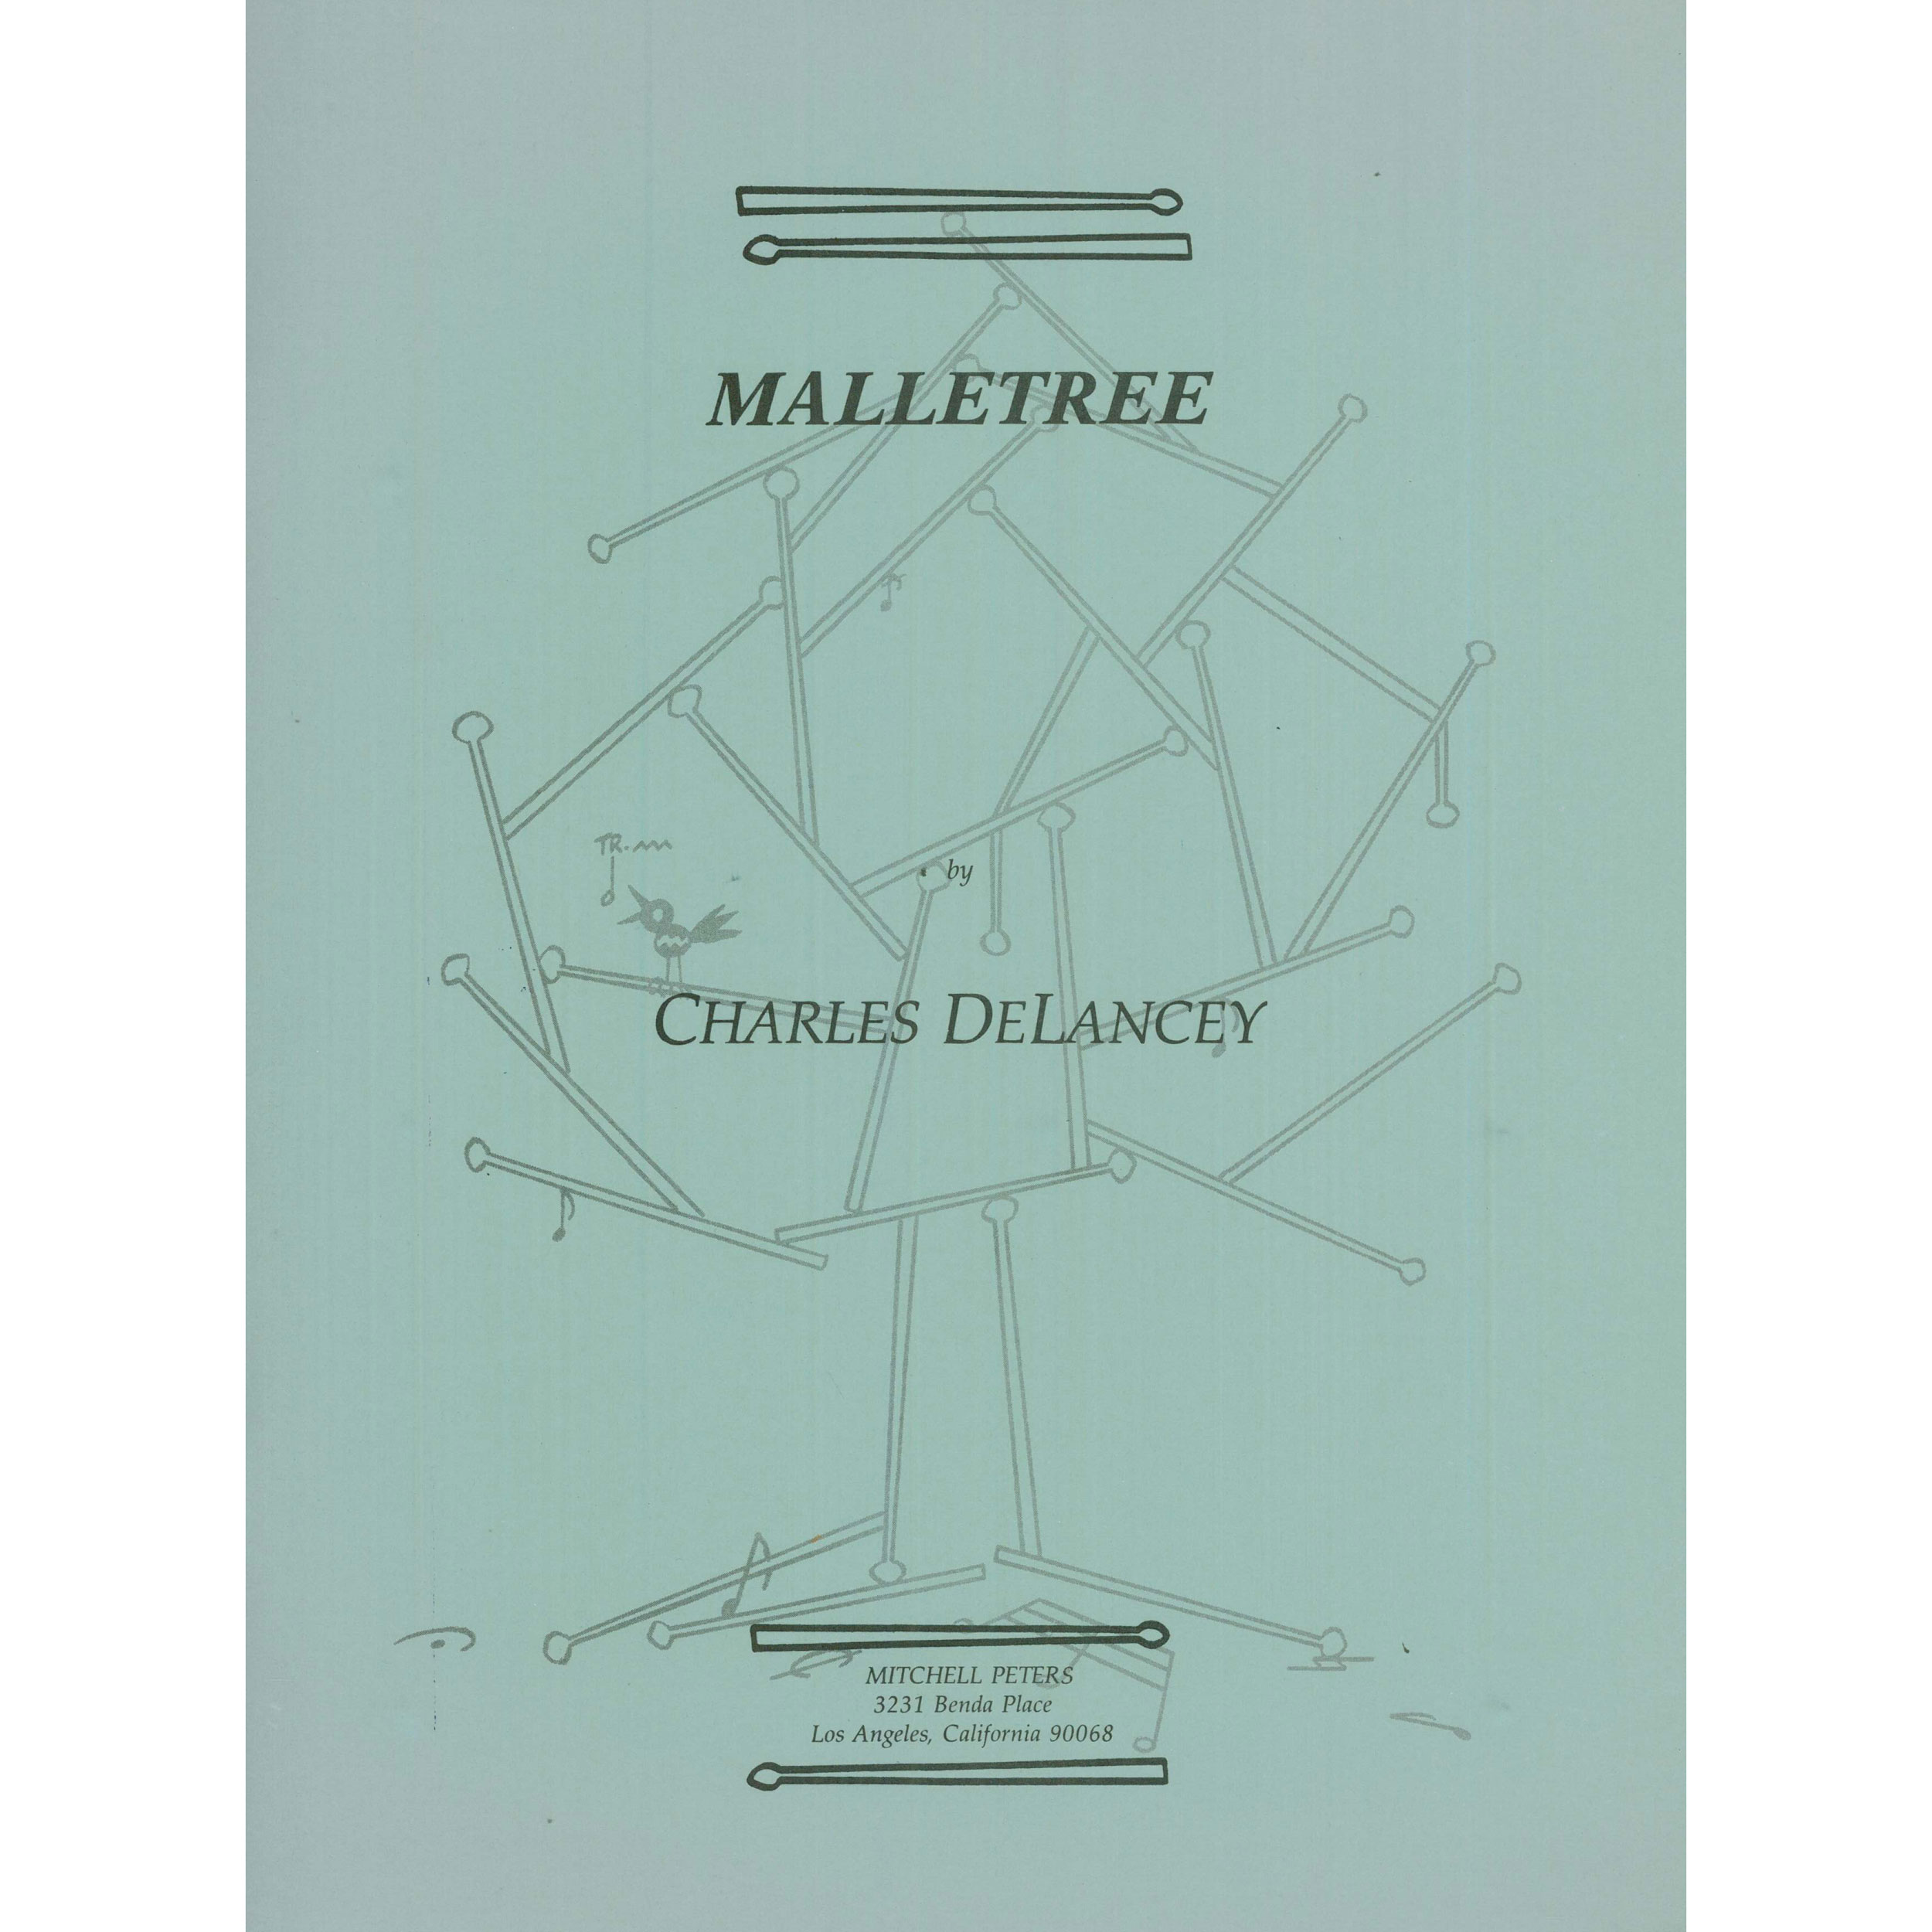 Malletree by Charles DeLancey